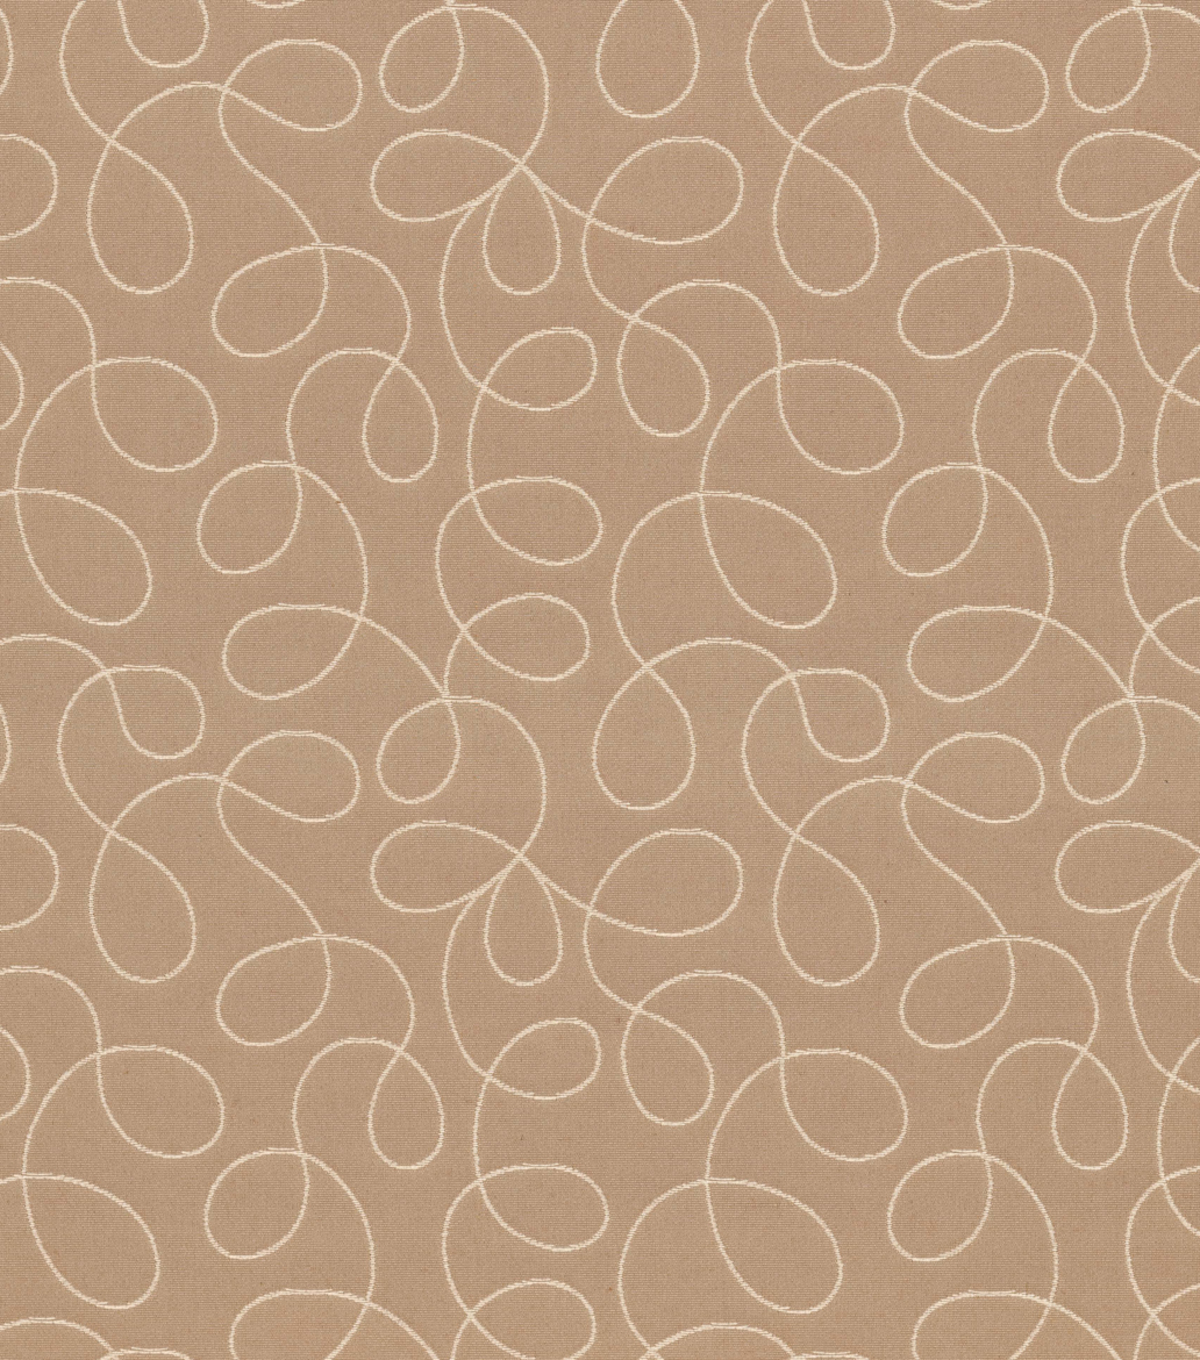 Home Decor 8\u0022x8\u0022 Fabric Swatch-Loopy Cream